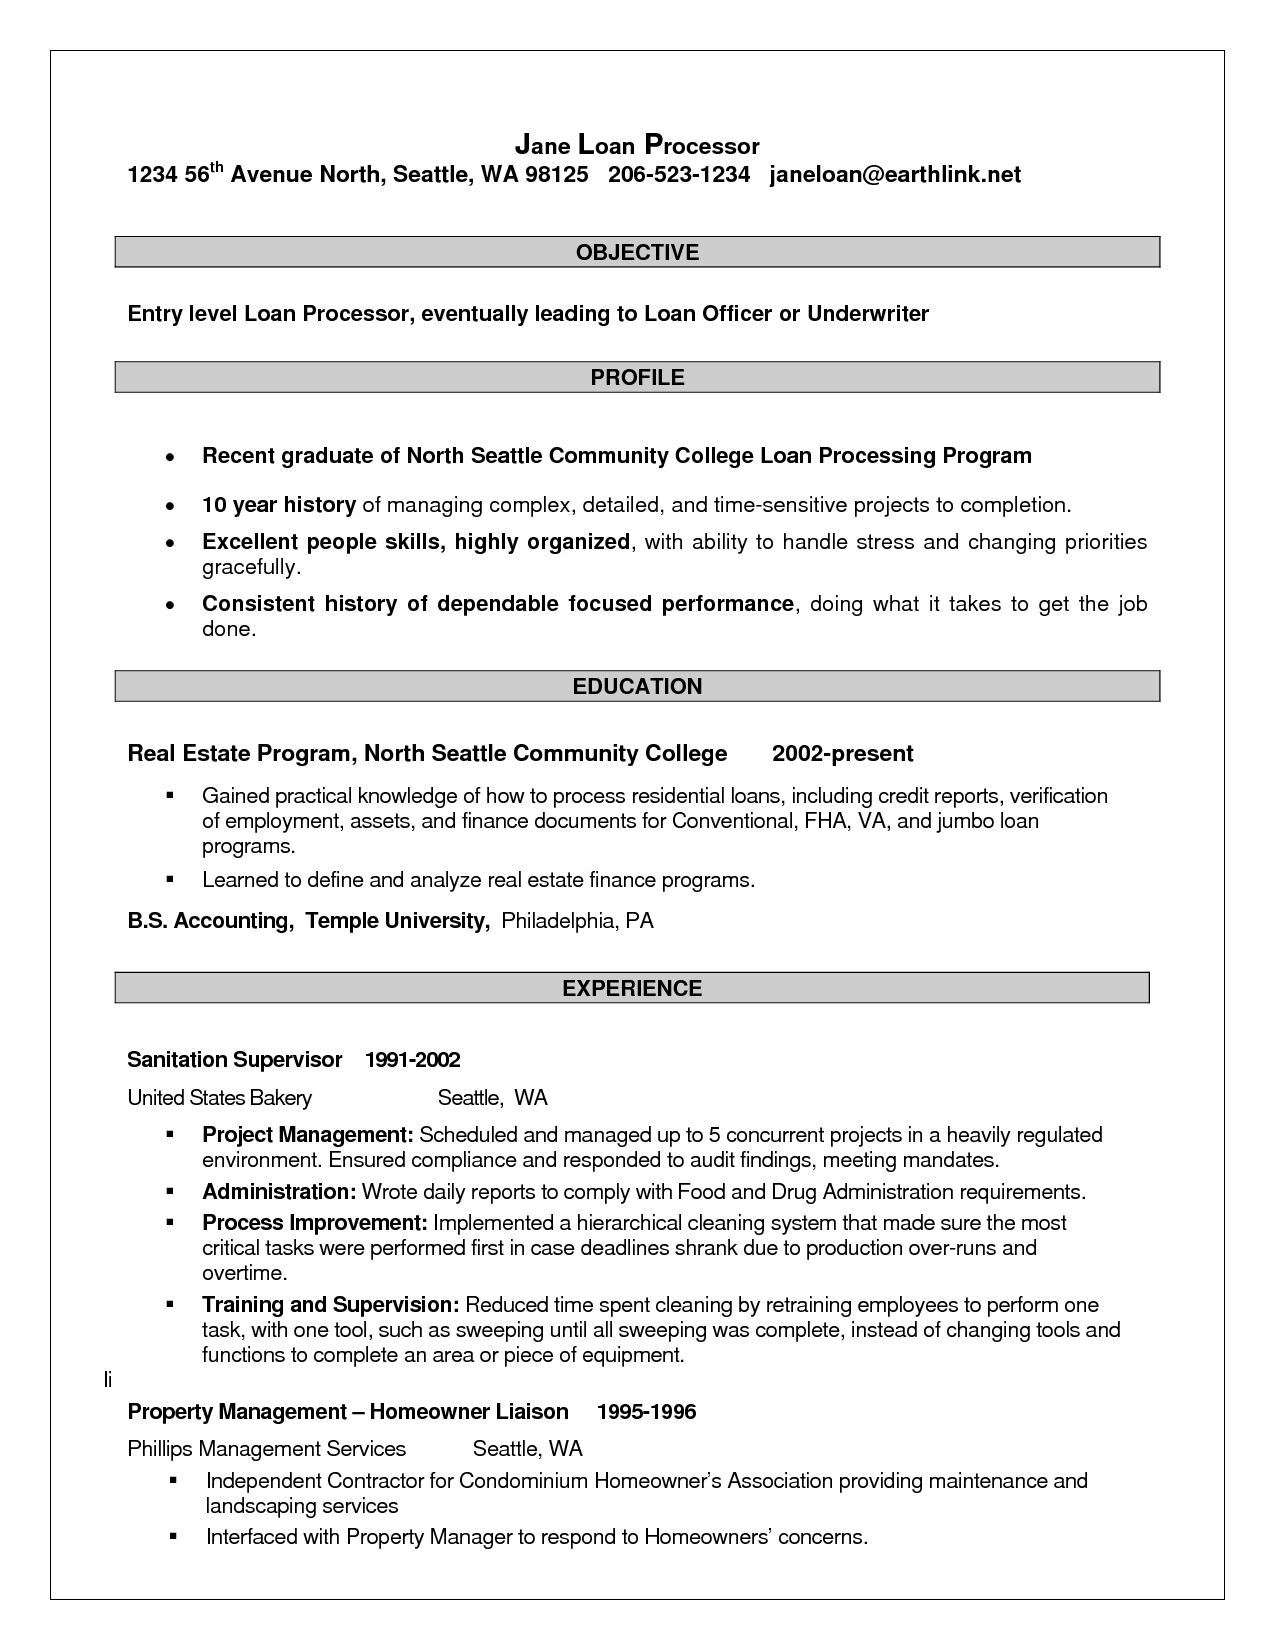 Resume For Loan Processor  Loan Officer    Sample Resume